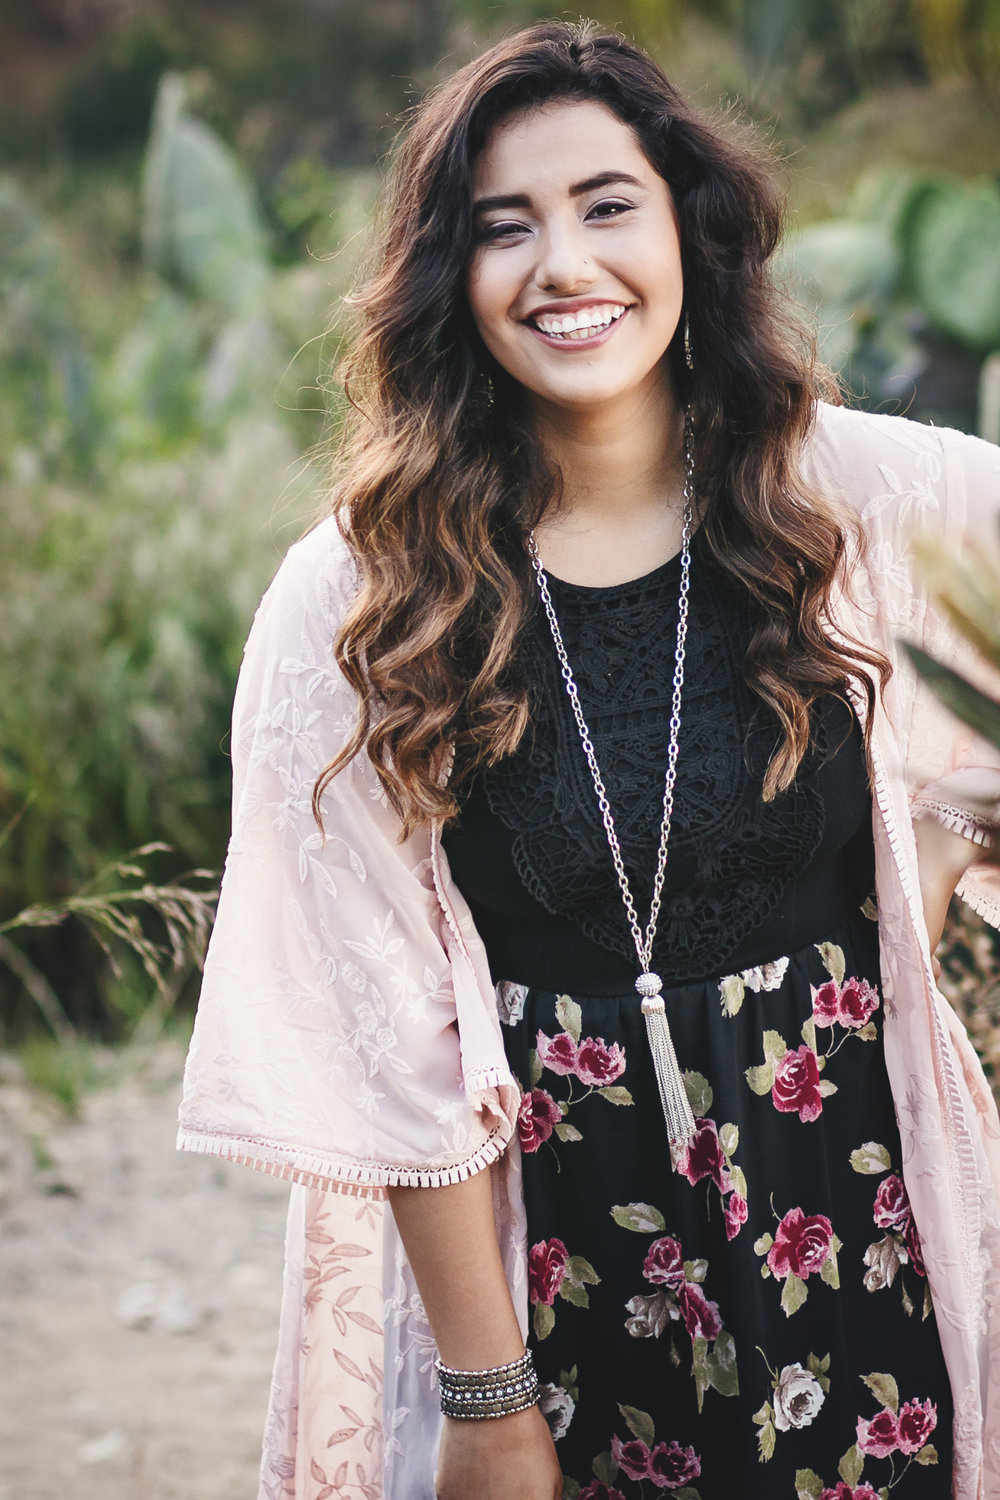 shawna-parks-photo-celeste-escanuela-senior-photos-san-diego-028.jpg